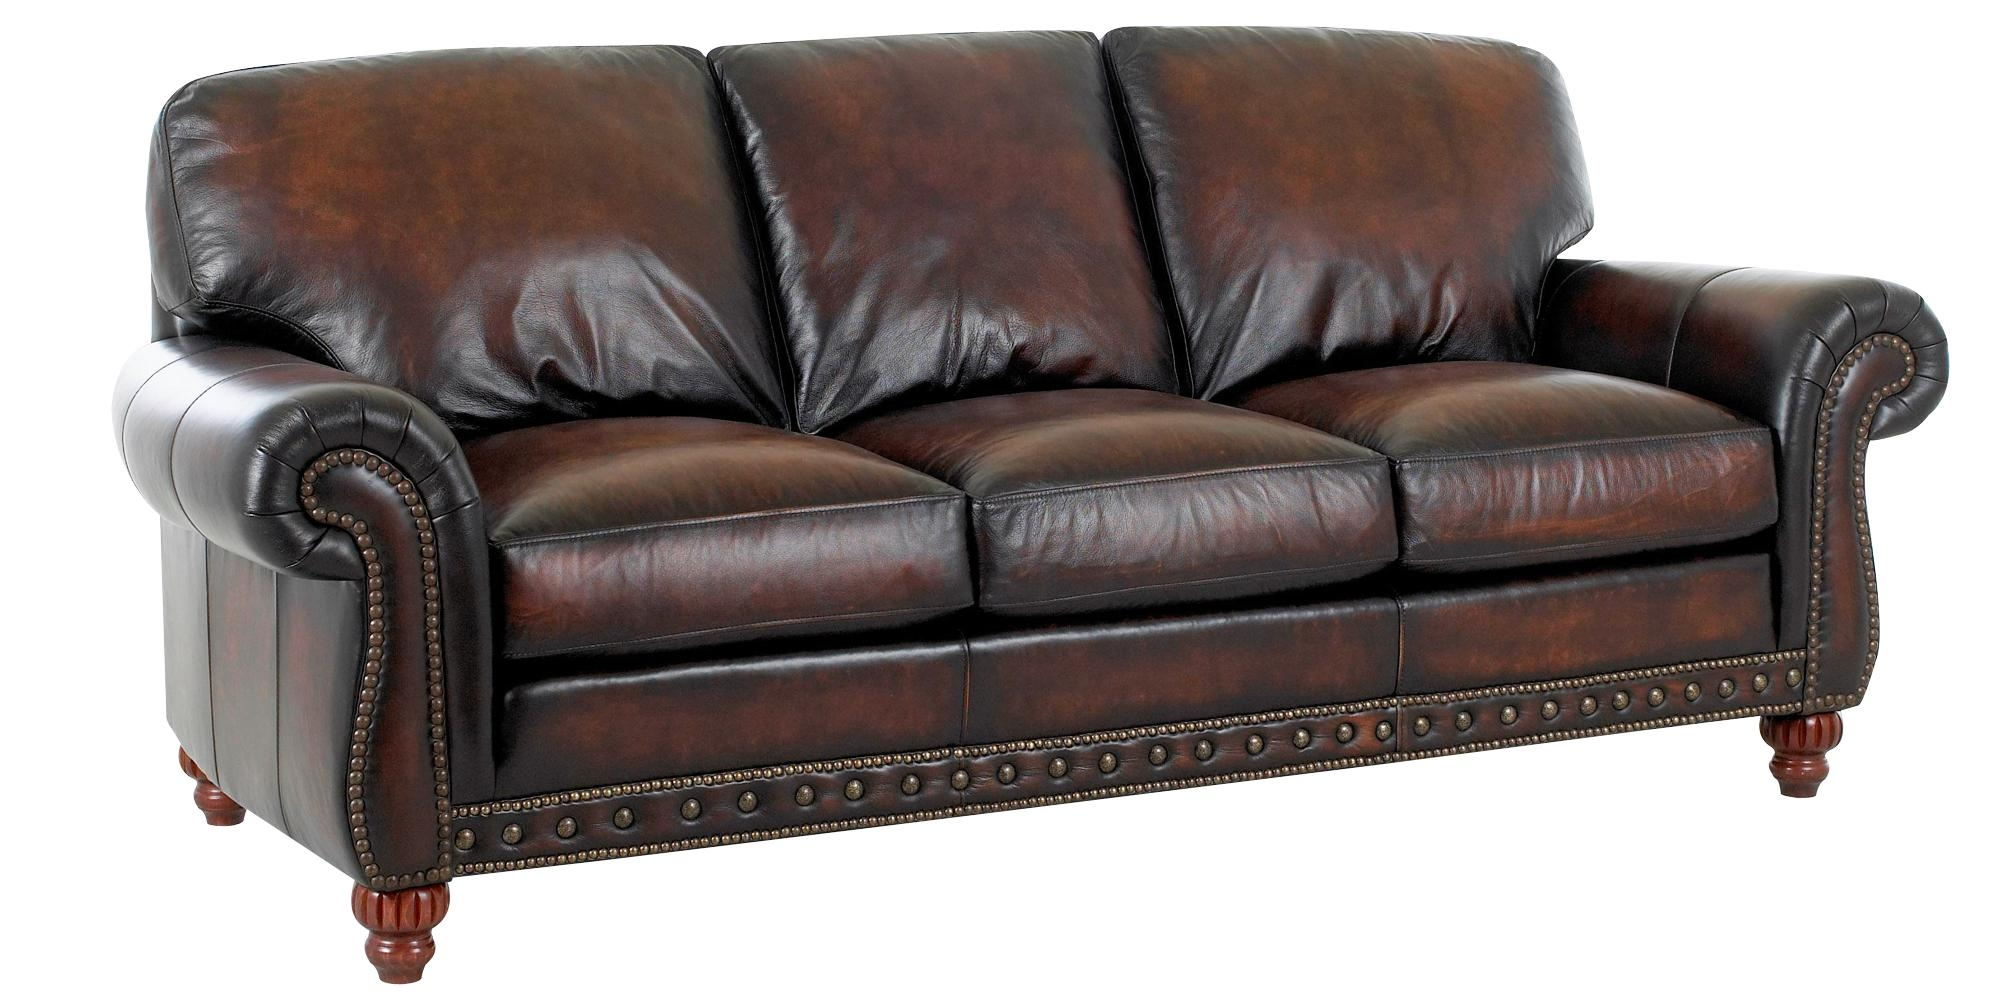 Traditional European Old World Leather Sofa Set | Club Furniture In European Leather Sofas (View 20 of 21)